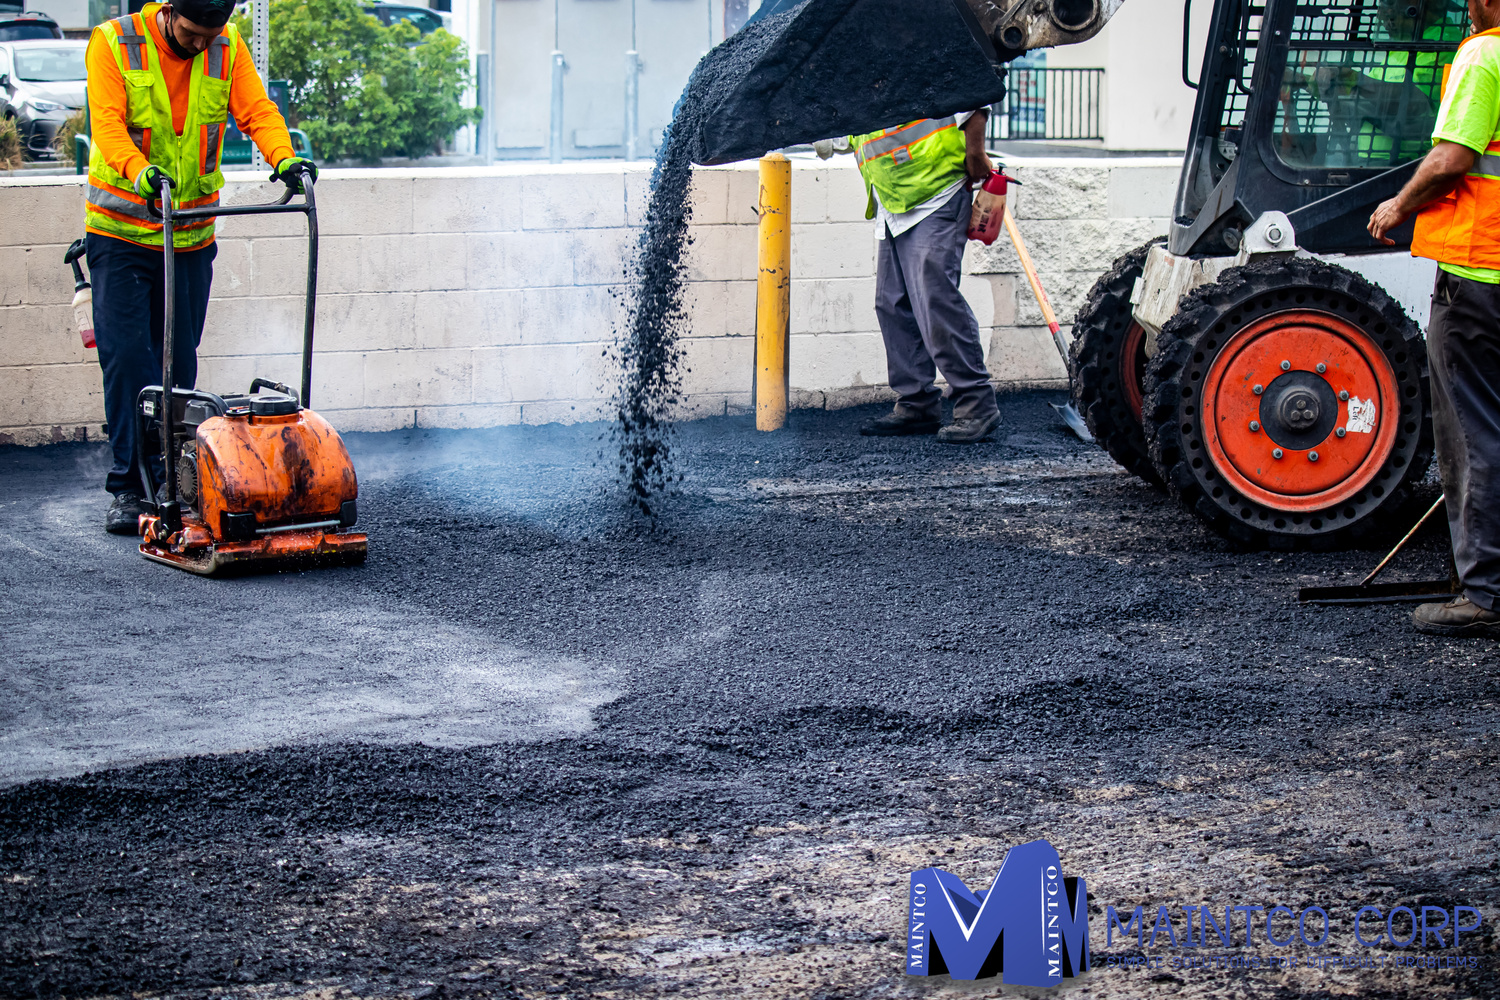 Maintco employees pouring asphalt to pave a parking lot